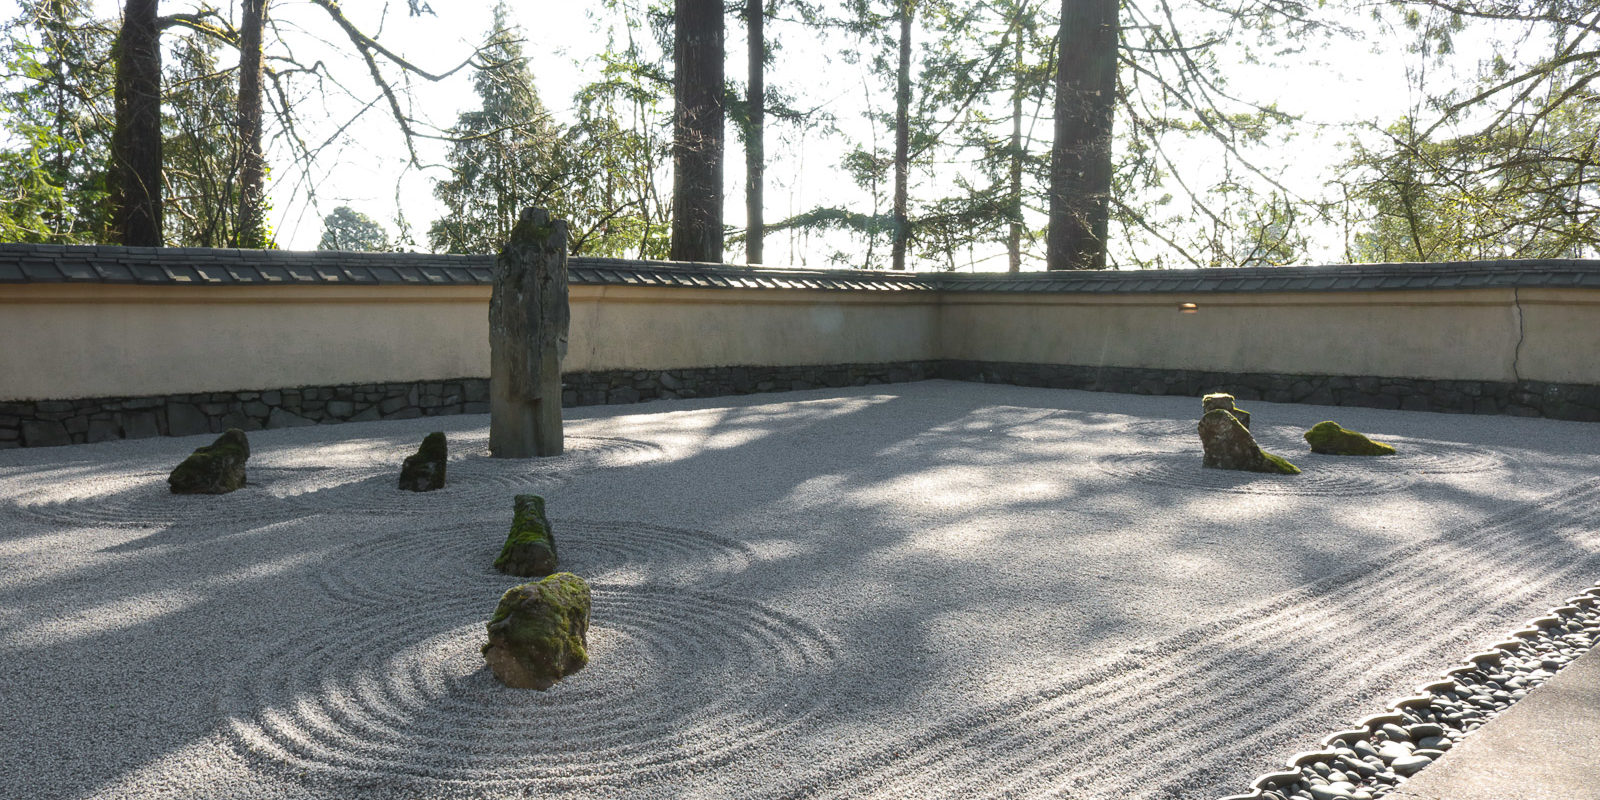 LR_Julia Taylor_Portland Japanese Garden_March 20, 2018_IMG_4391